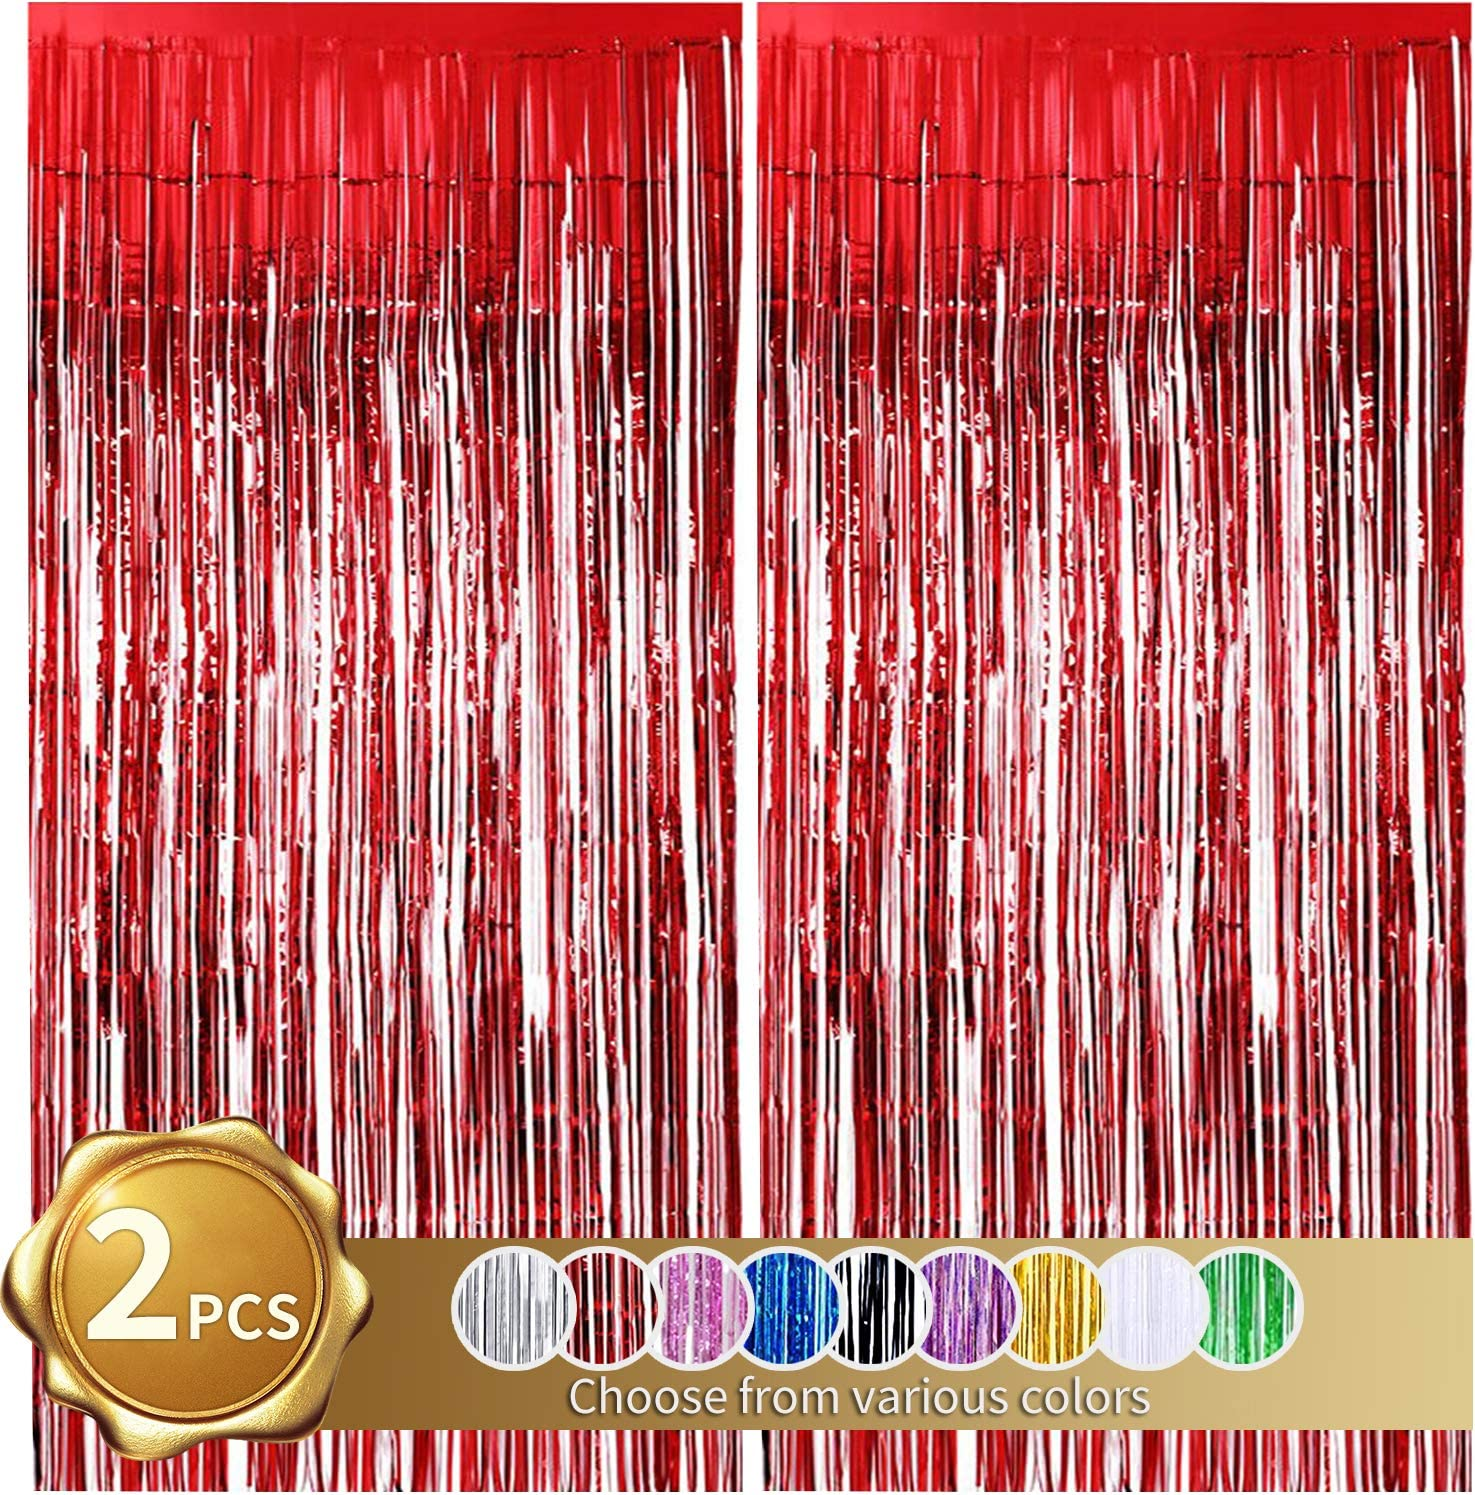 2 Pack Foil Fringe Curtains Christmas Photo Backdrop Red Tinsel Metallic Curtains Photo Props Background for Christmas Wedding Bridal Shower Birthday Bachelorette Party Stage Decor(3.28 ft x 6.56 ft)